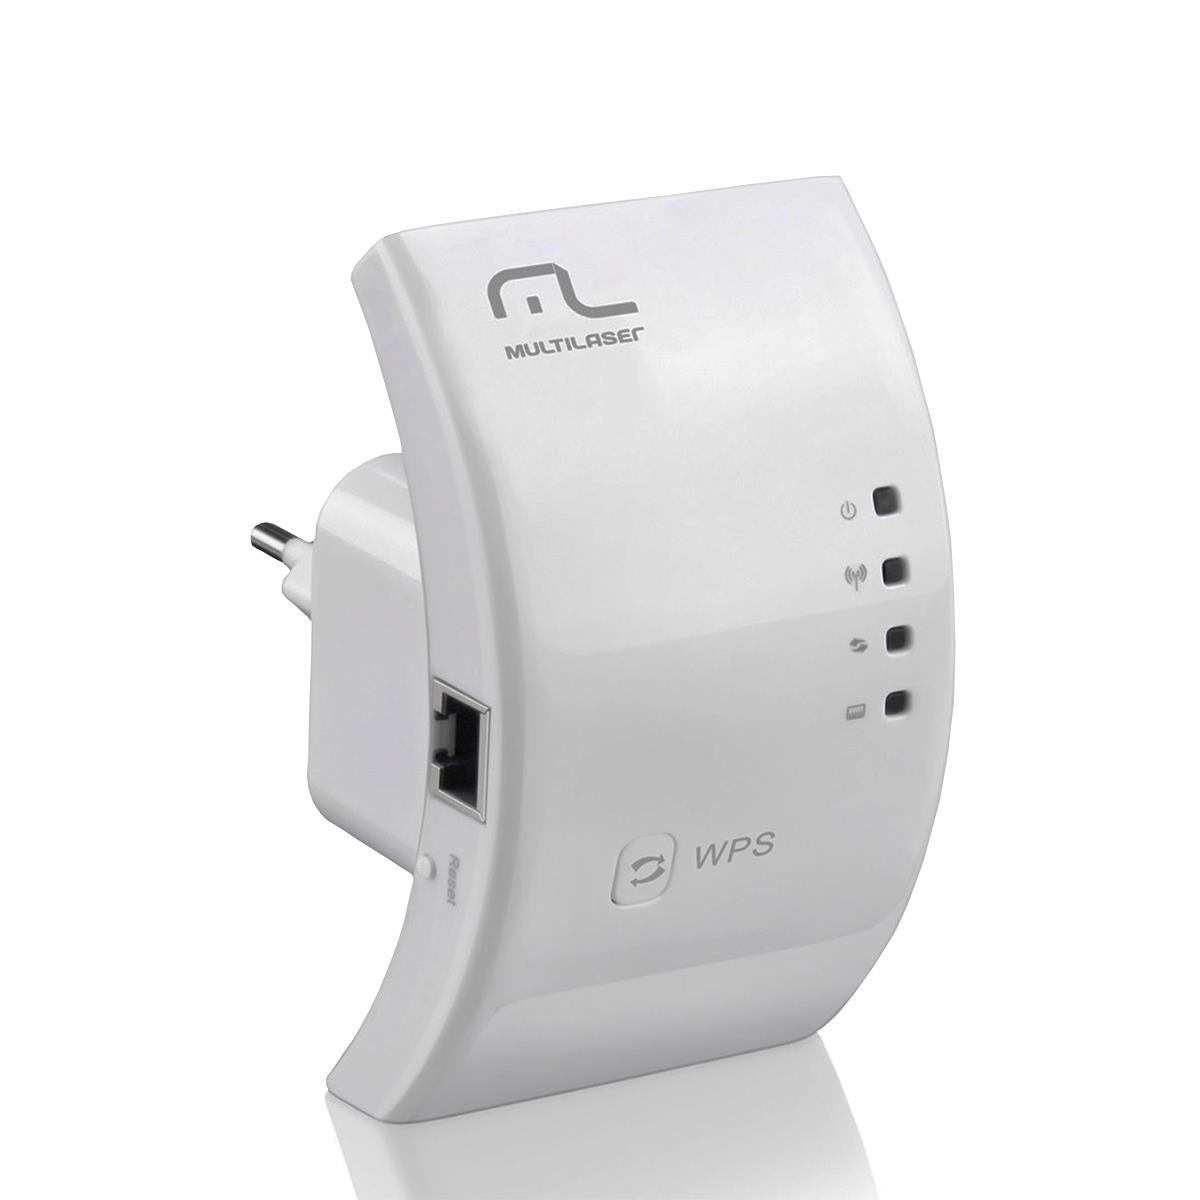 Roteador Repetidor Multilaser Wireless 300mbps Wps - RE051